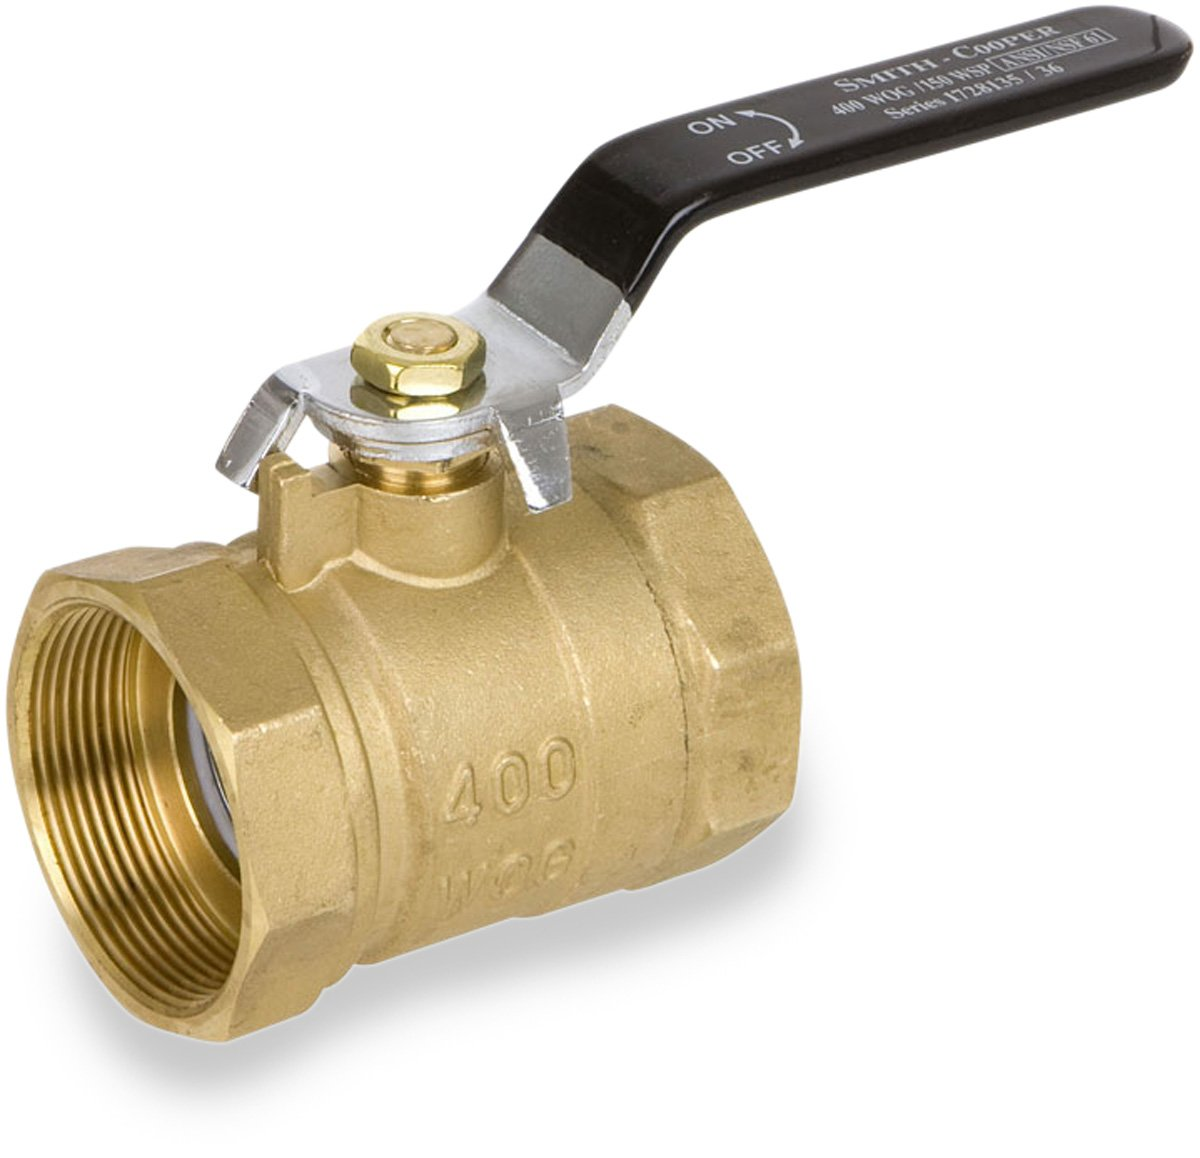 Smith-Cooper International 8135 Series Brass Ball Valve, Inline, Lever Handle, 1-1/2'' NPT Female, Non-Potable Water Use Only